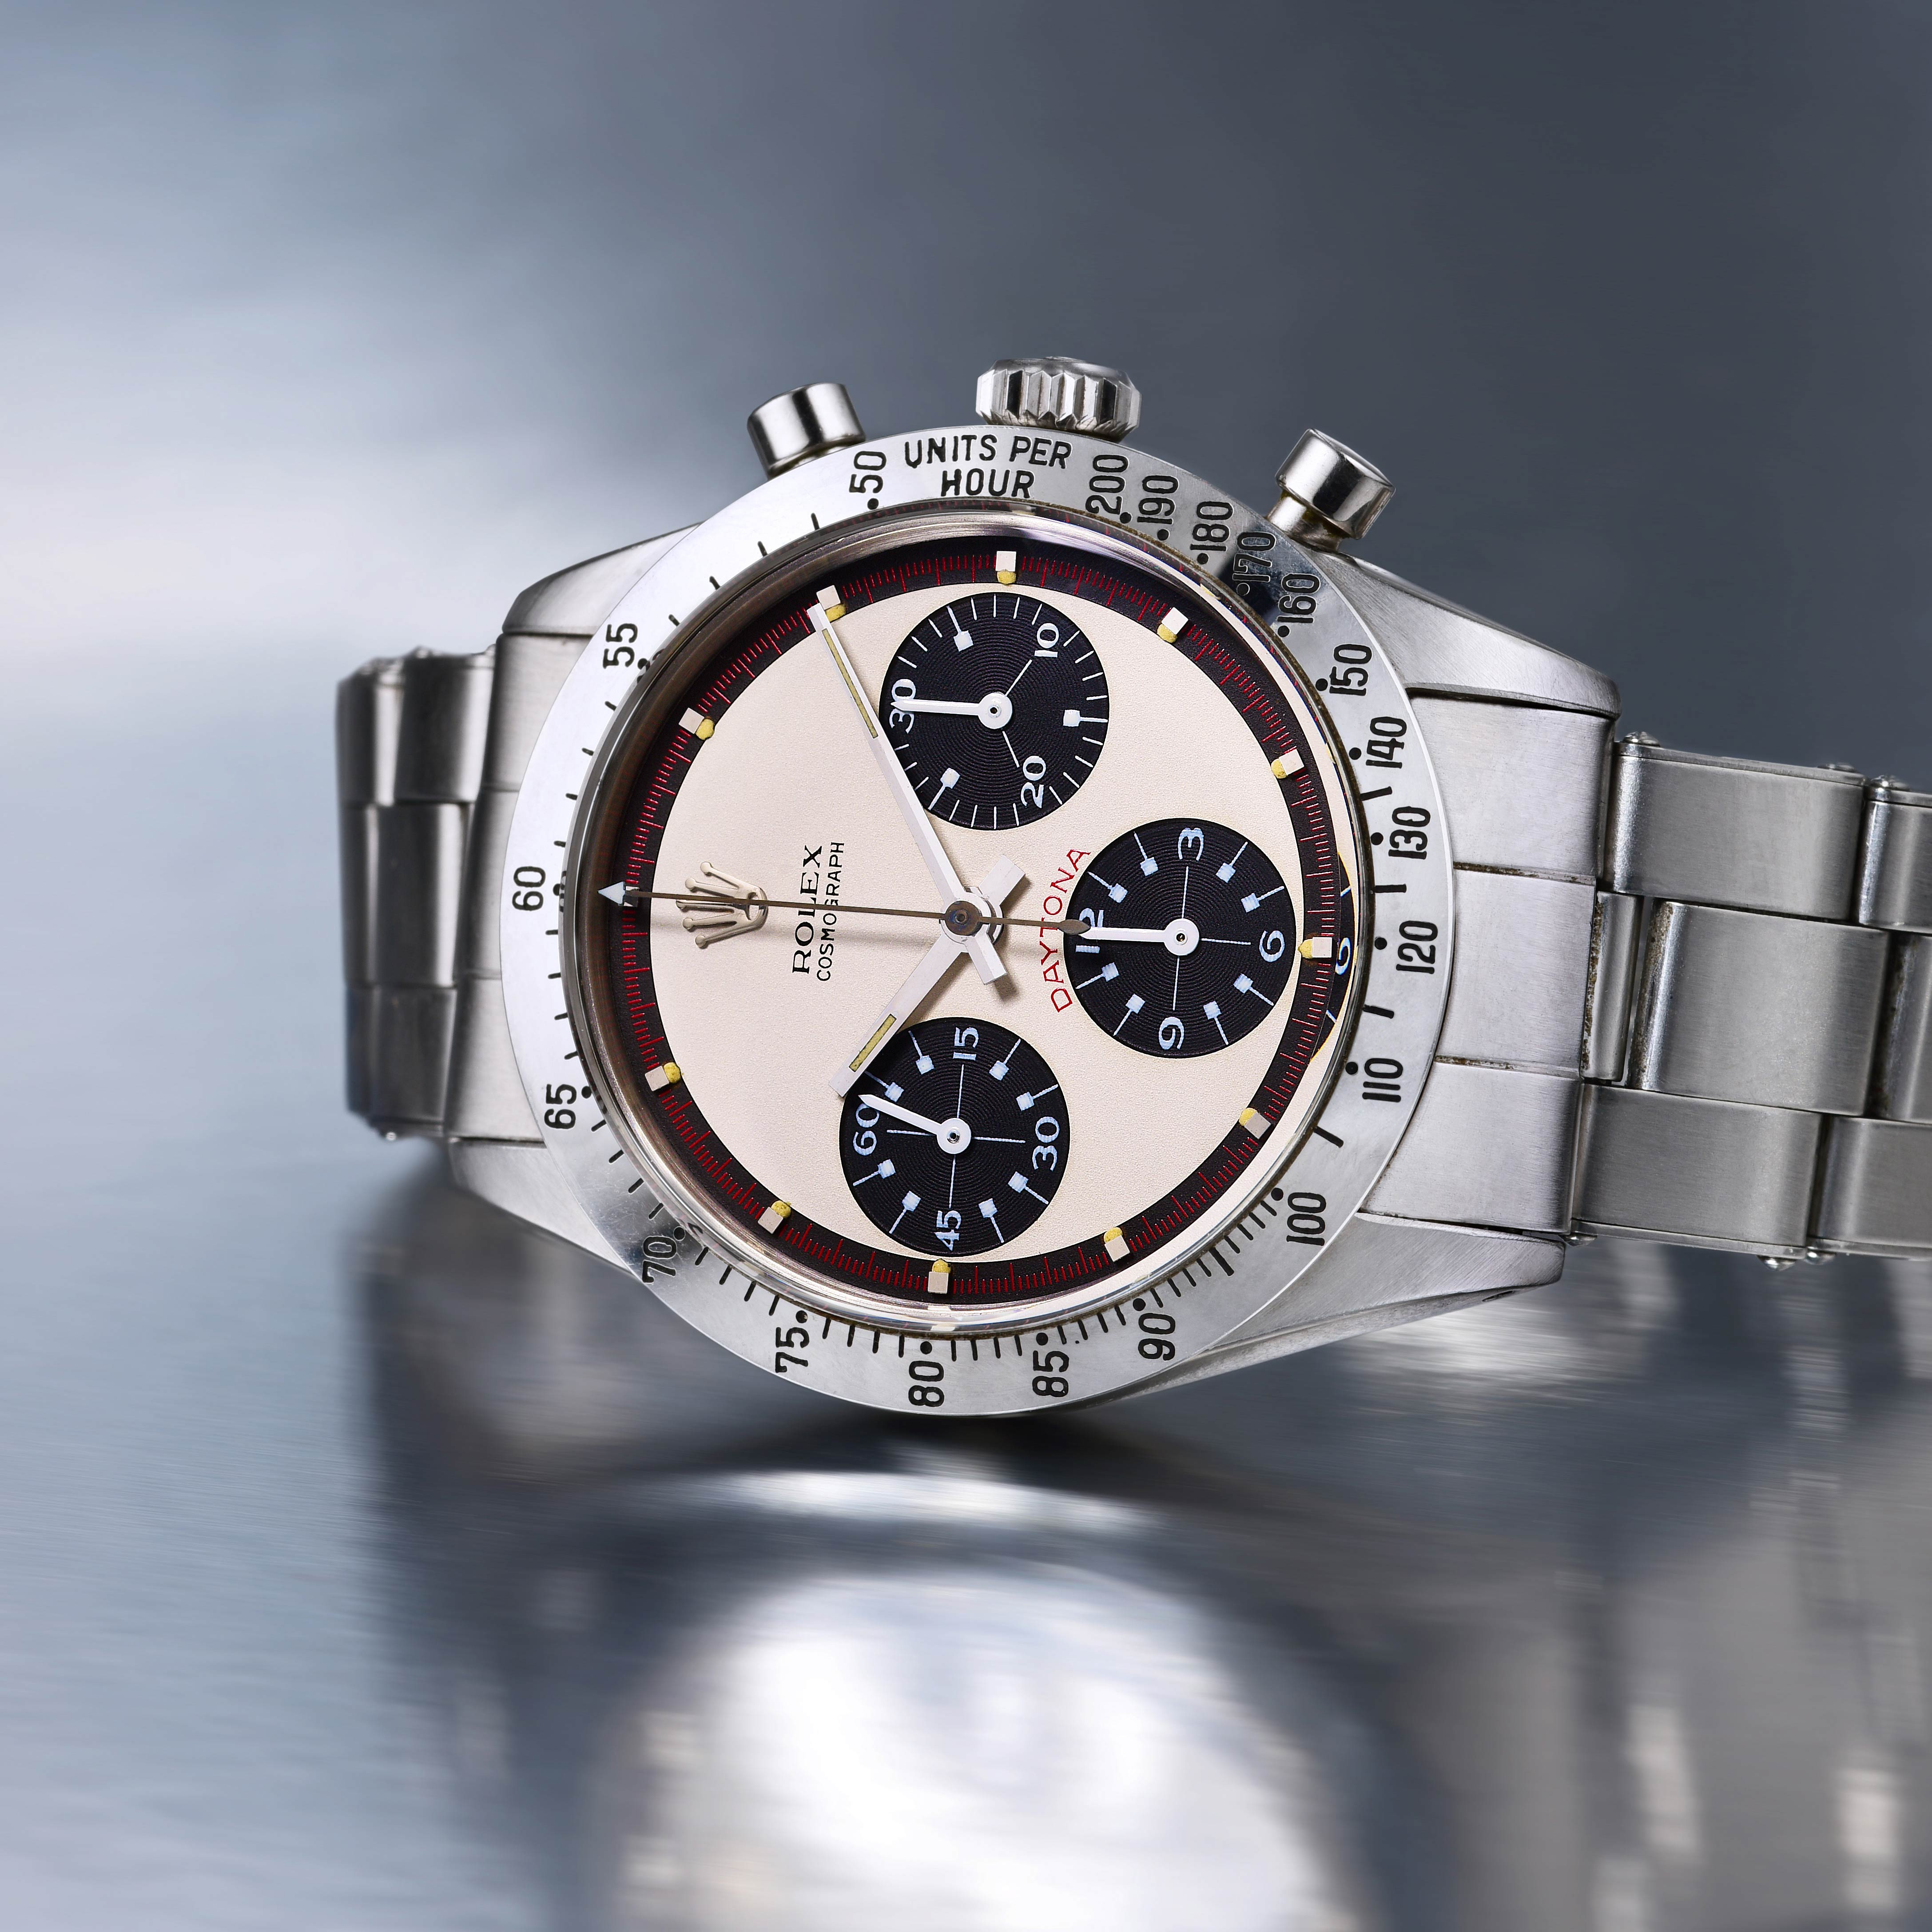 Rolex Paul Newman Daytona - Fortuna NYC Fine Jewelry & Watch Auction